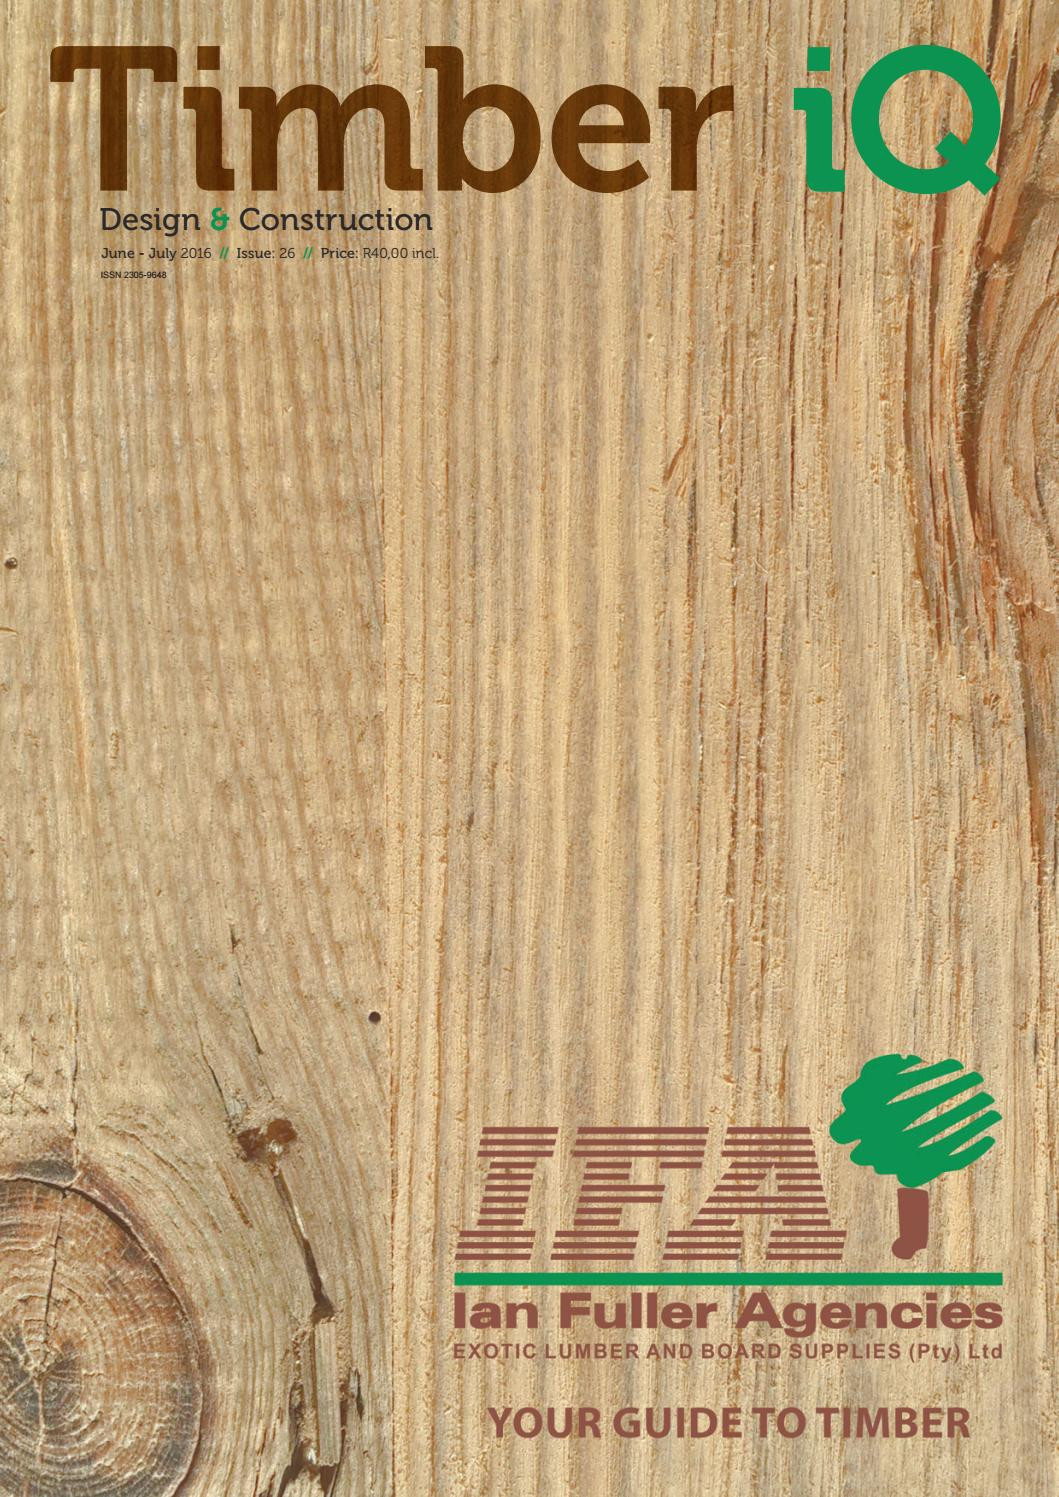 tg hardwood floor specialists of timber iq june july 2016 issue 26 by trademax publications issuu pertaining to page 1